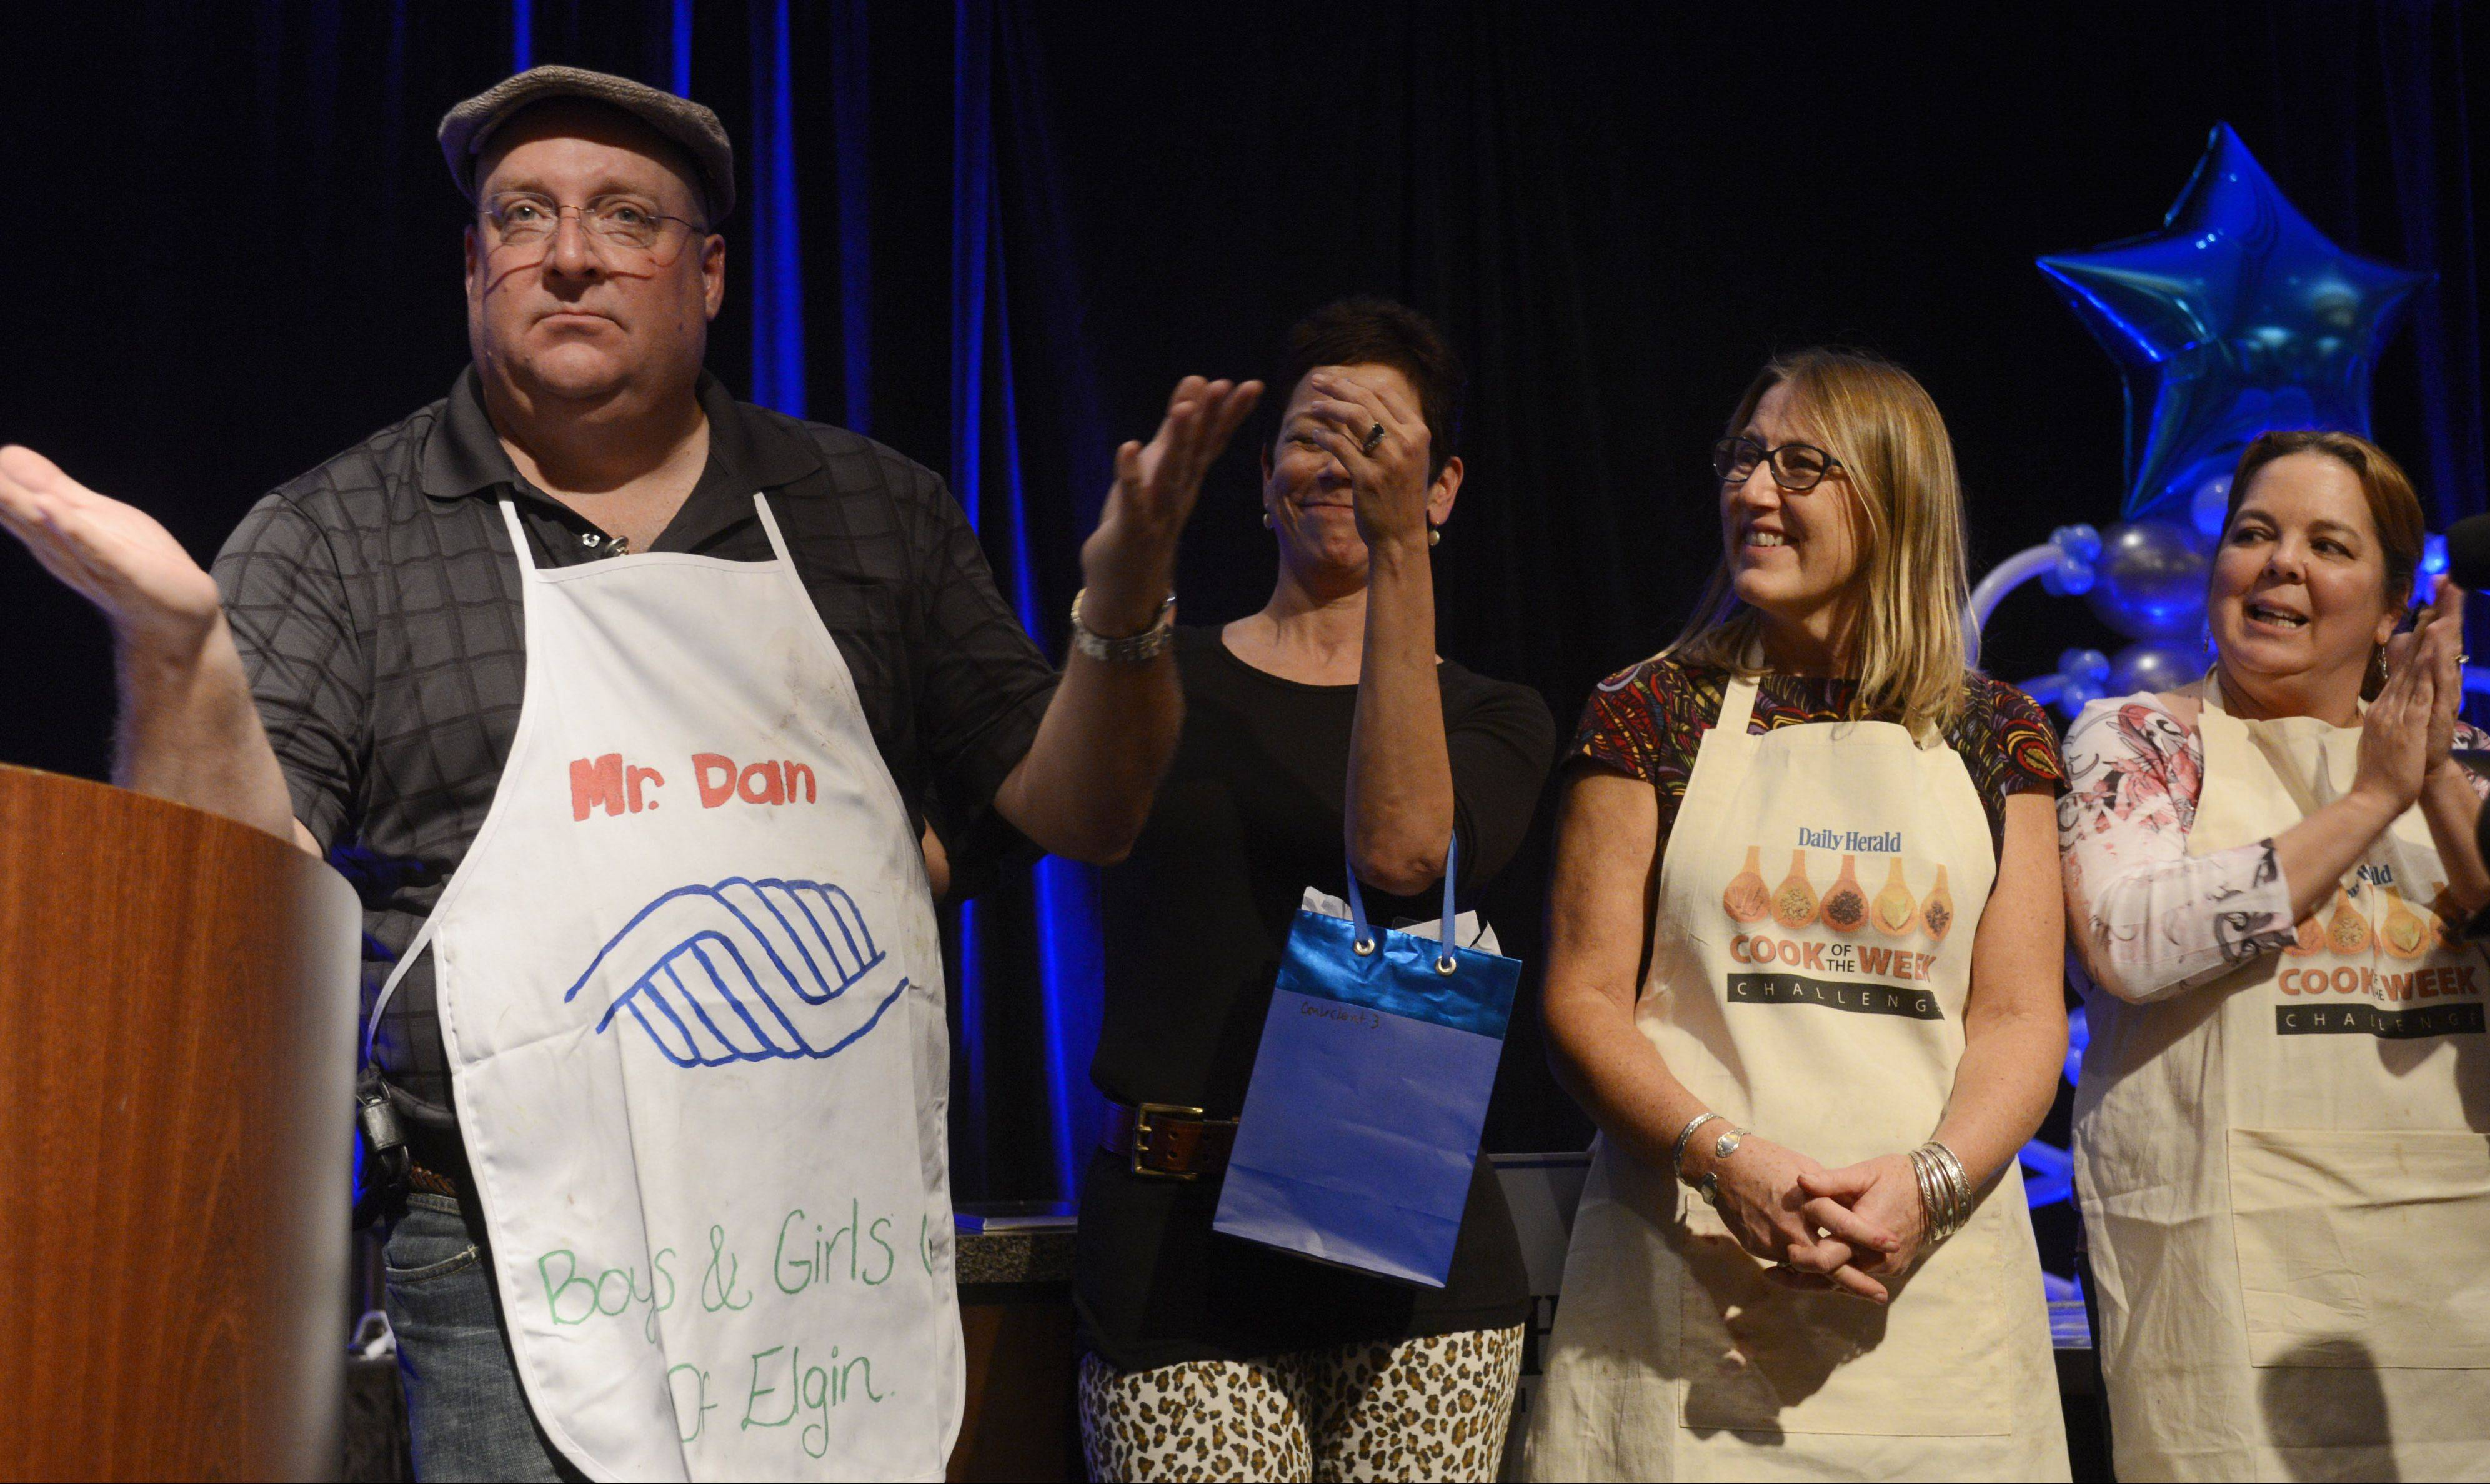 Dan Rich of Elgin emerged as Cook of the Year after the one-hour mystery ingredient cook-off Oct. 30 at the Hyatt Regency Schaumburg. He competed against Lori Motyka, from left, Christine Murphy and Lori Wiktorek.